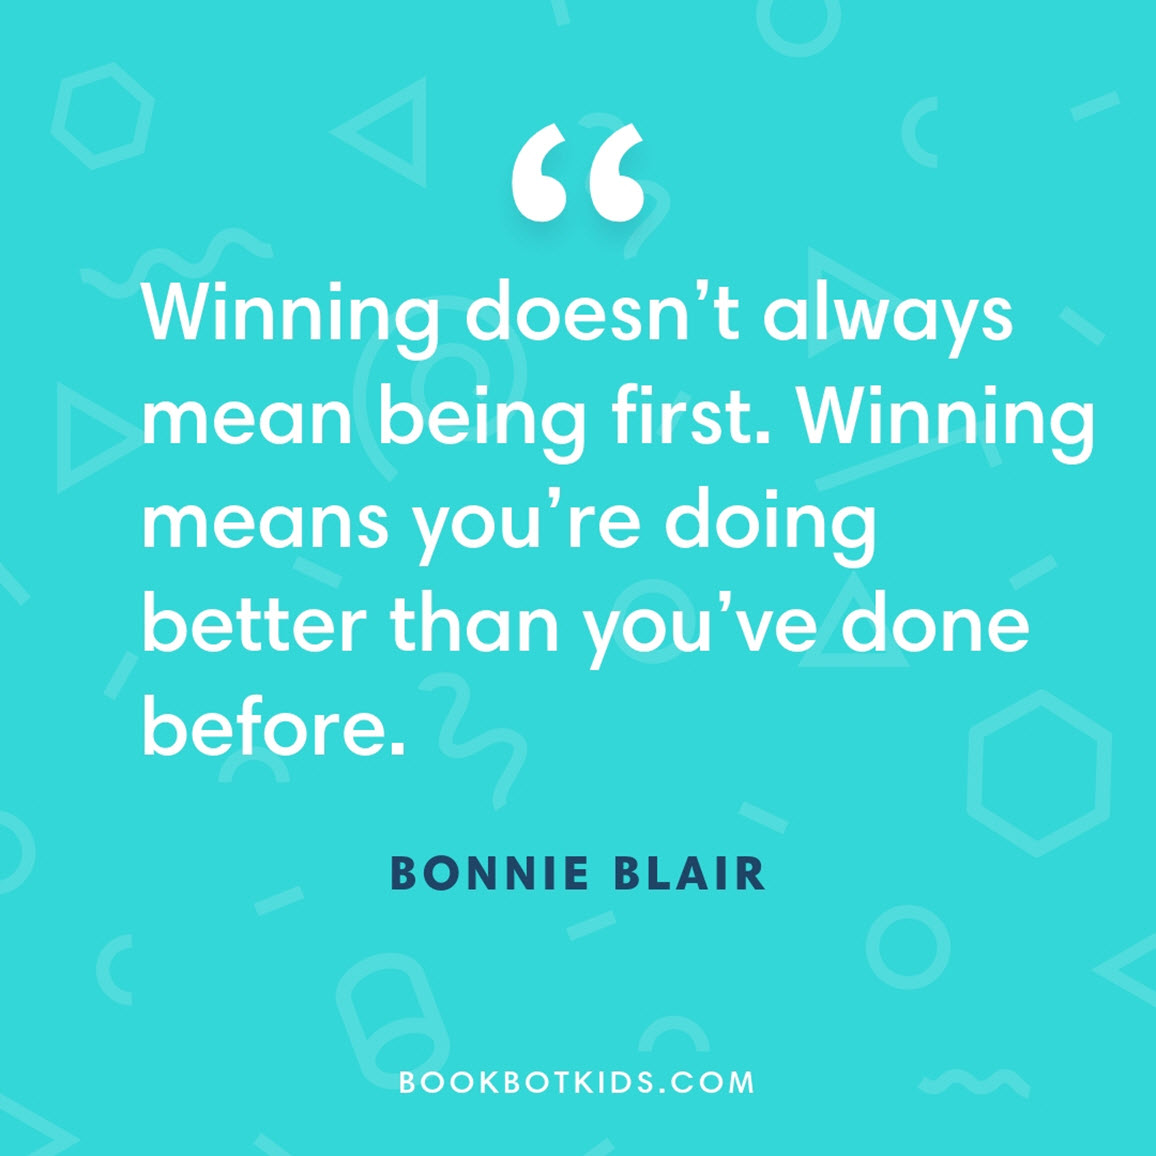 Winning doesn't always mean being first. Winning means you're doing better than you've done before. – Bonnie Blair